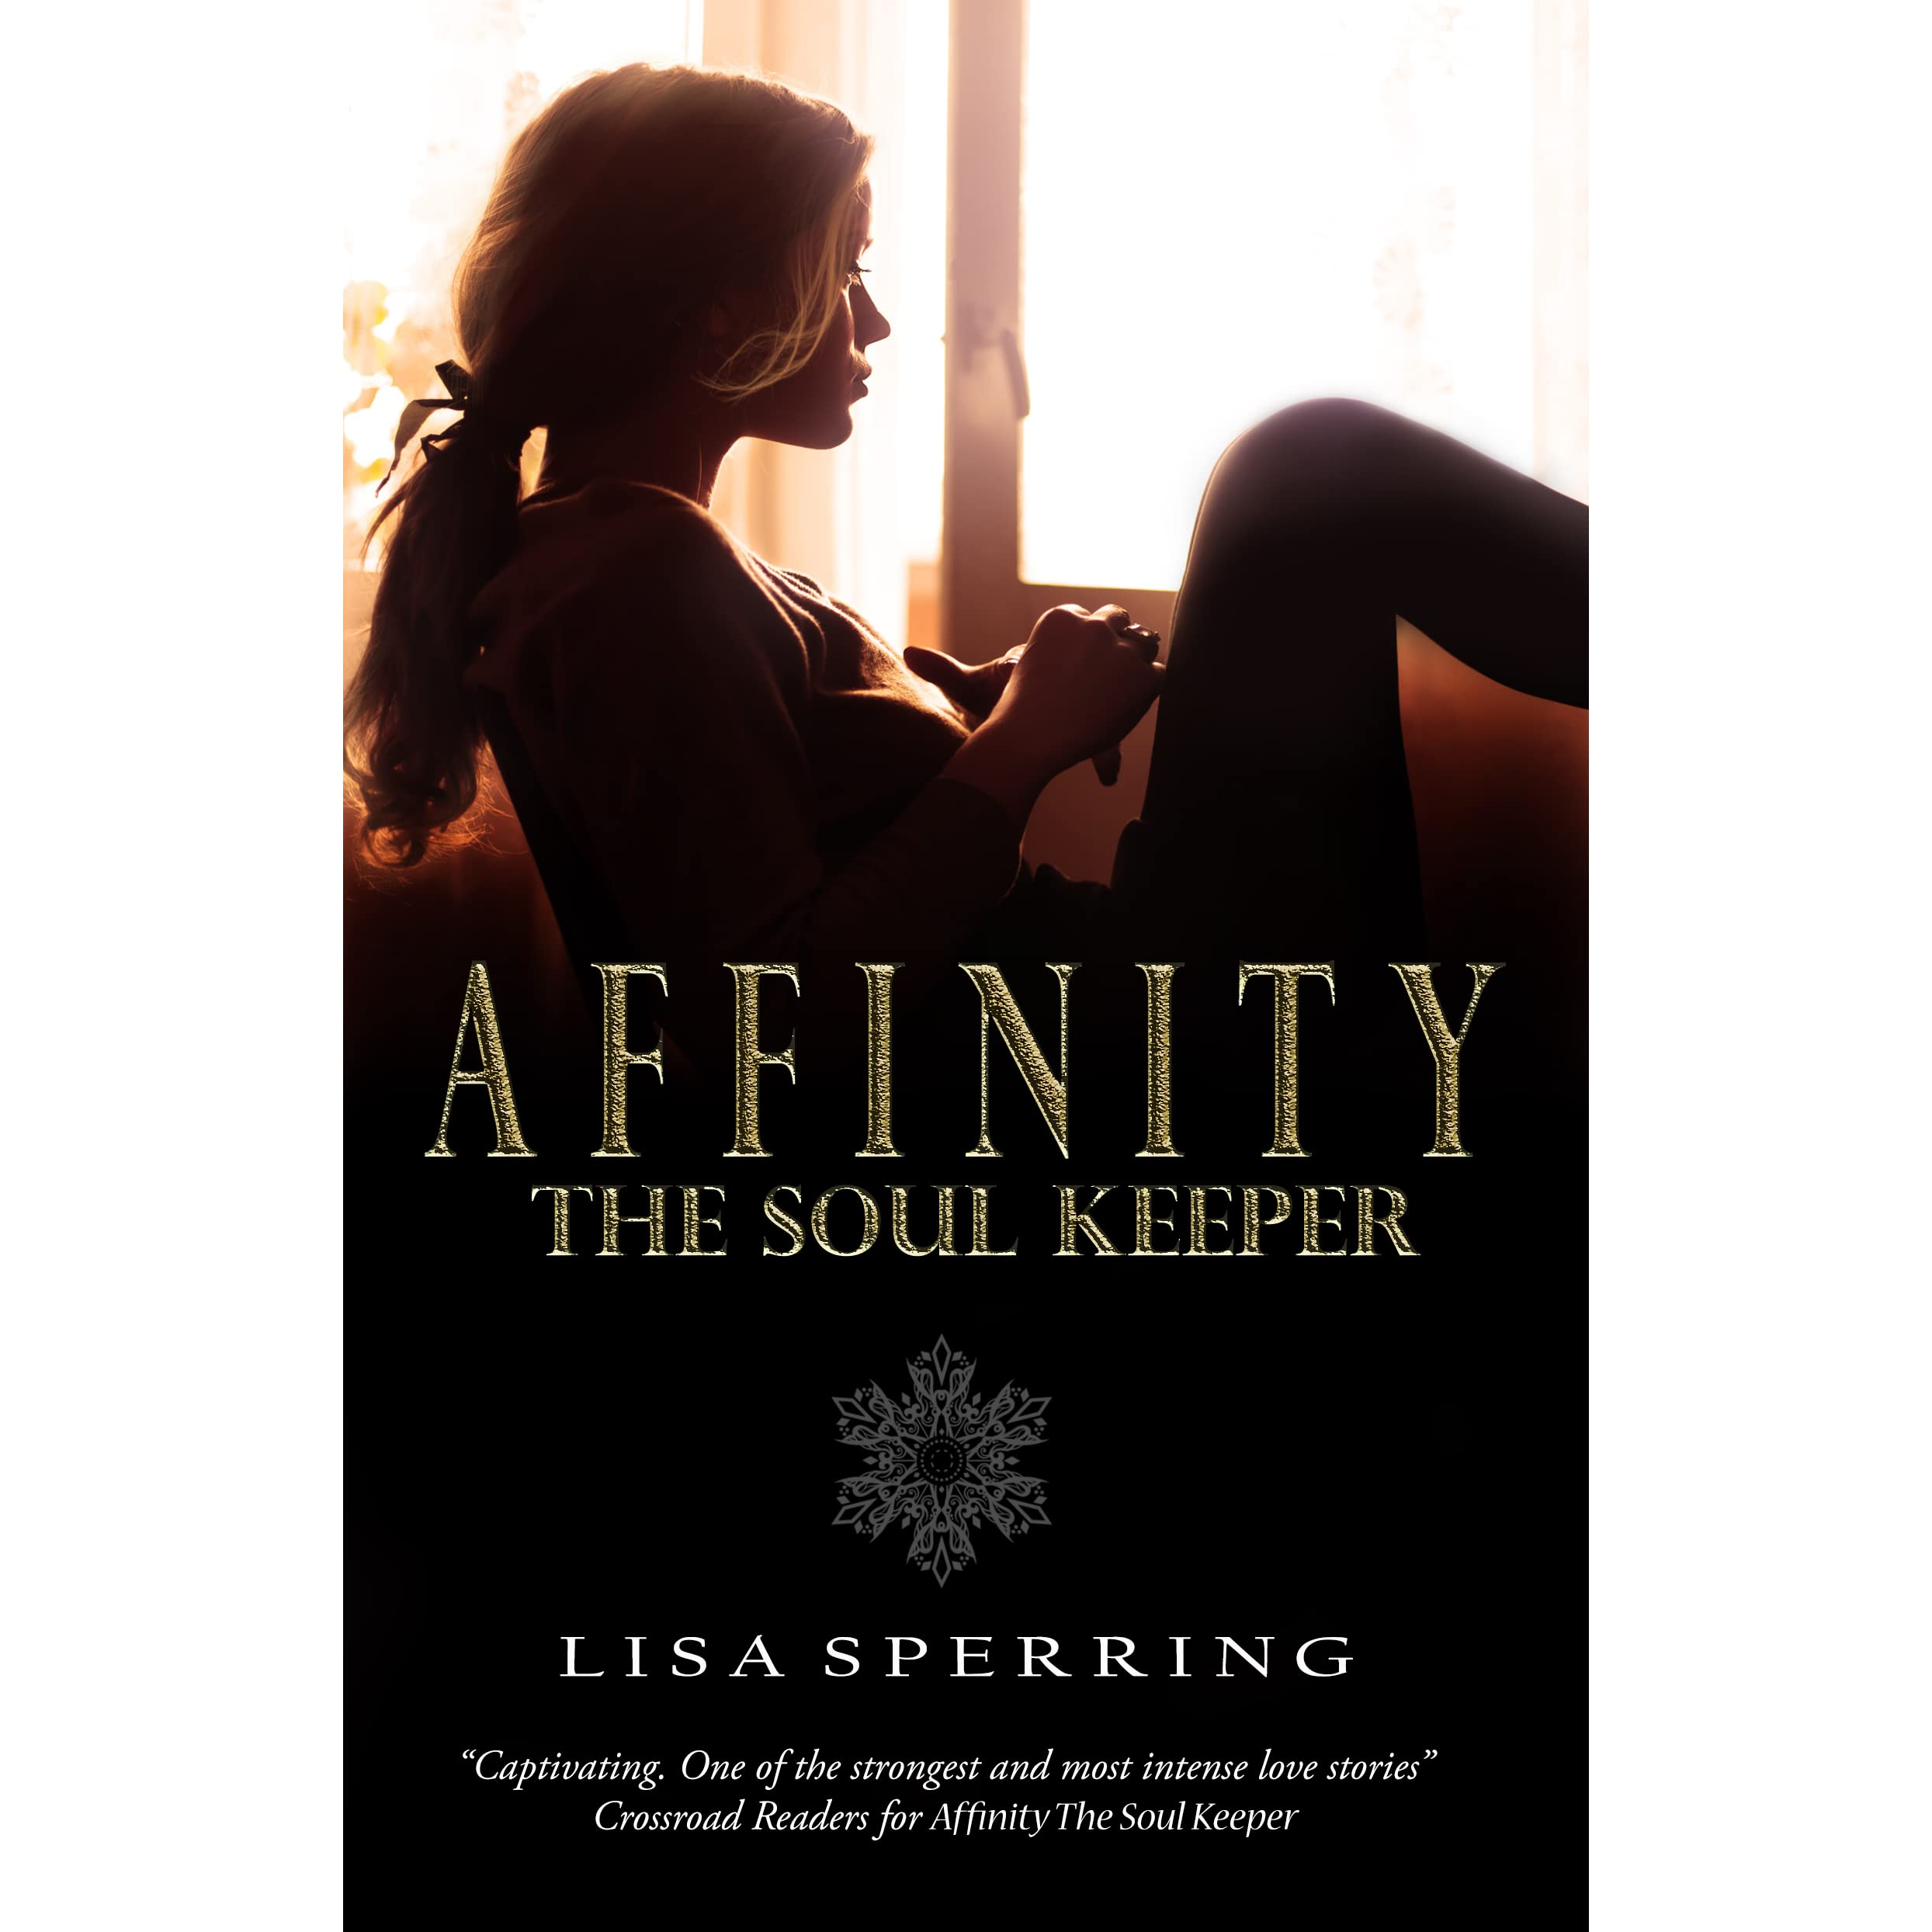 Thesoulkeeper: Affinity, The Soul Keeper (The Soul Series, #1) By Lisa